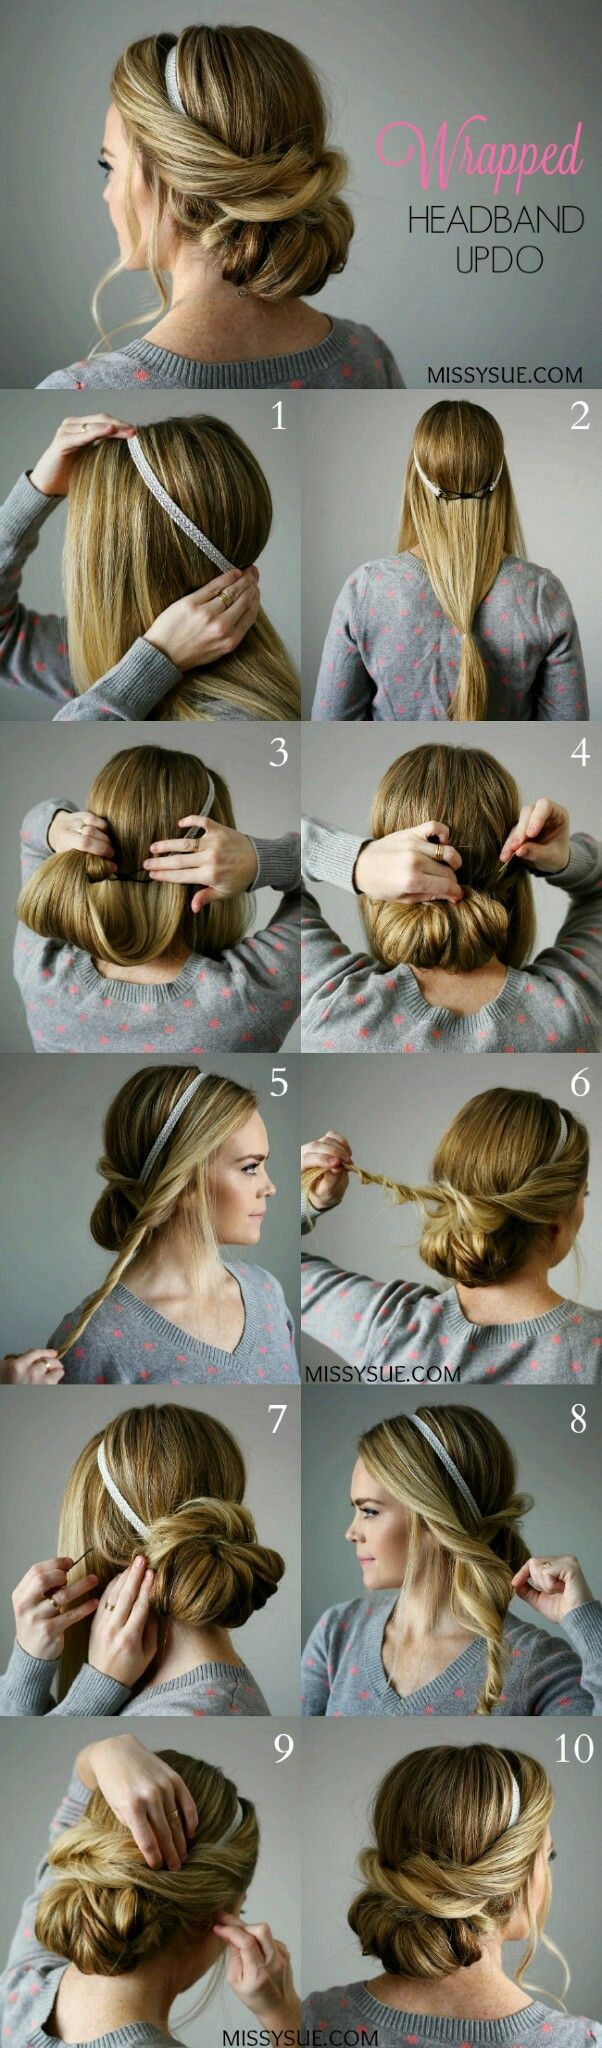 Cute Quick Hairstyles Endearing 17 Best Peinados Images On Pinterest  Coiffure Facile Hairstyle